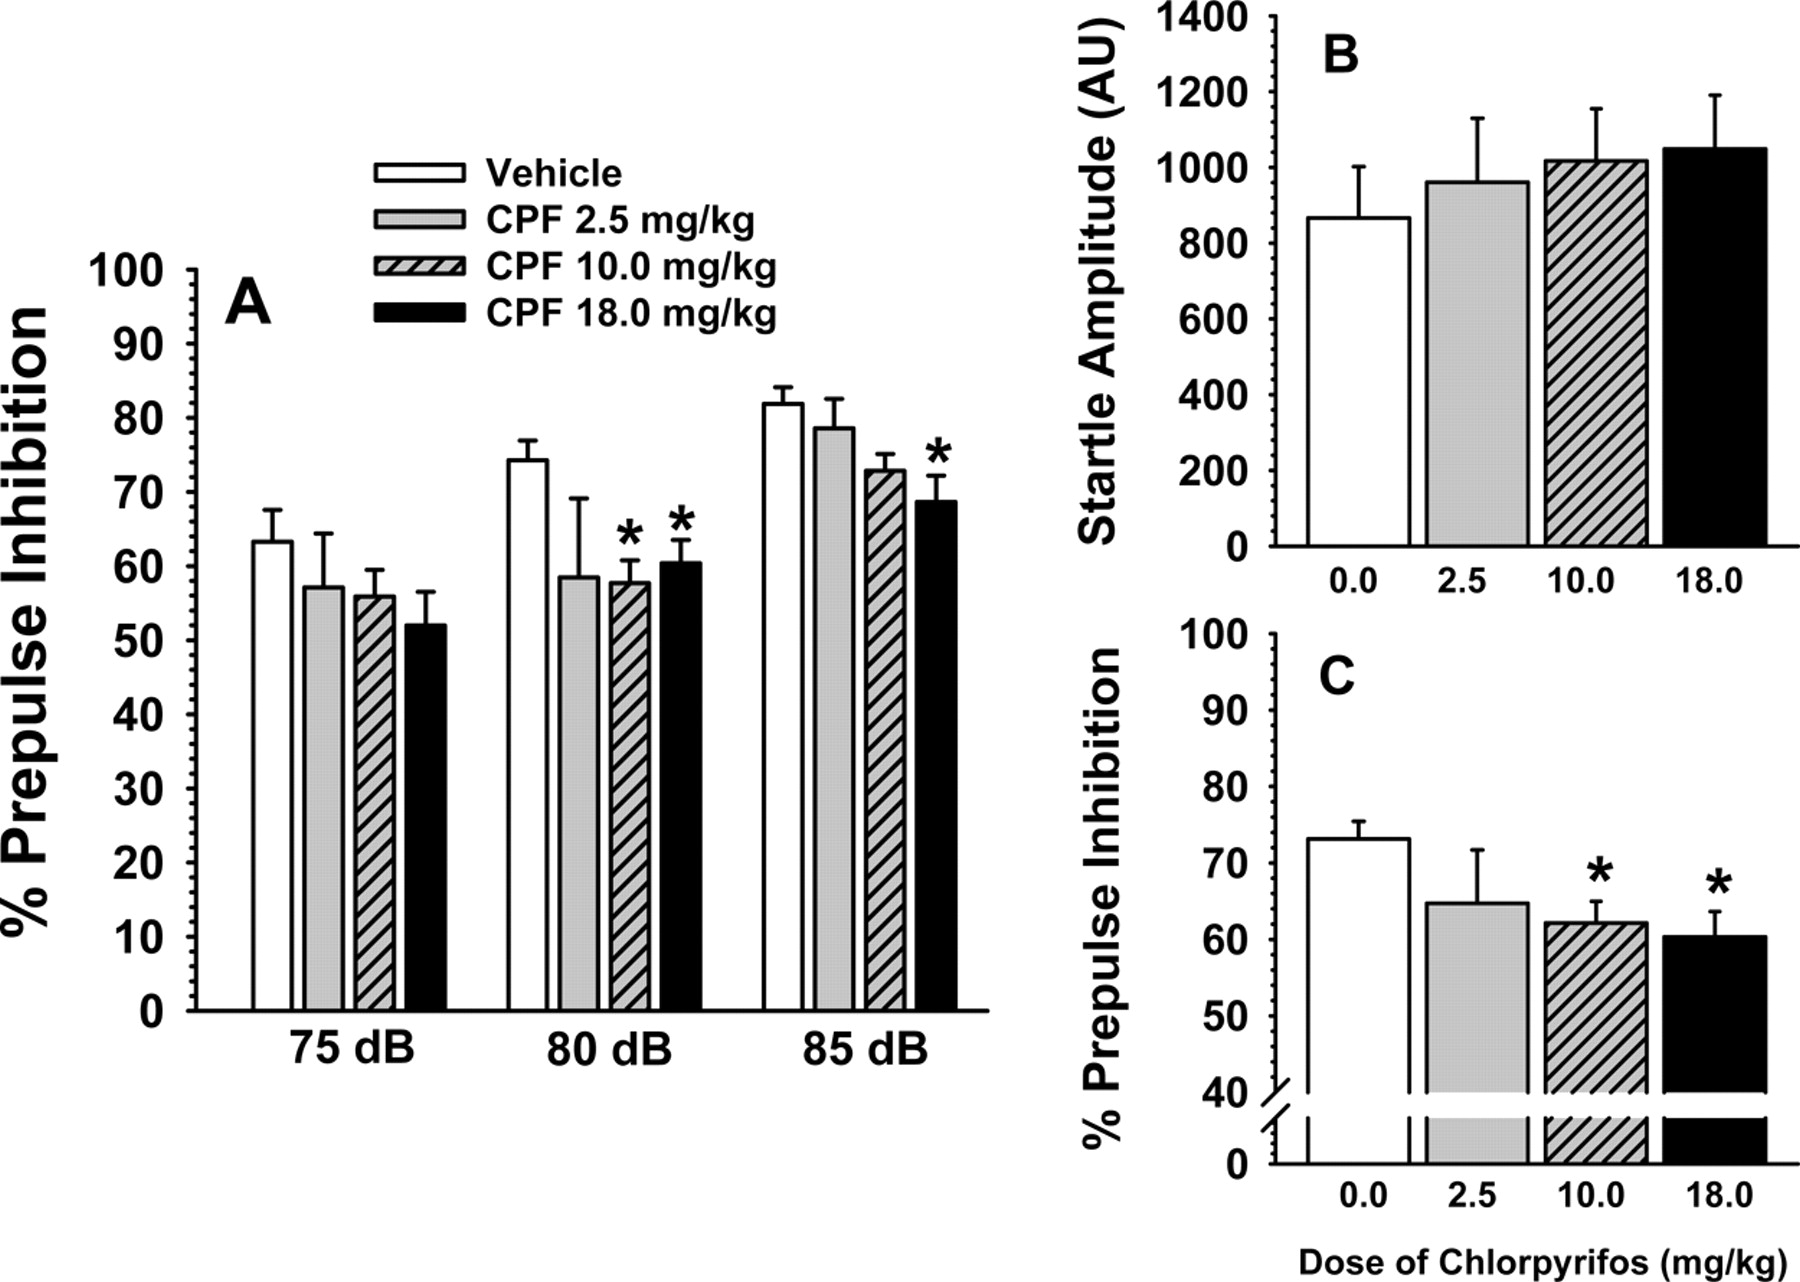 Chronic, Intermittent Exposure to Chlorpyrifos in Rats: Protracted